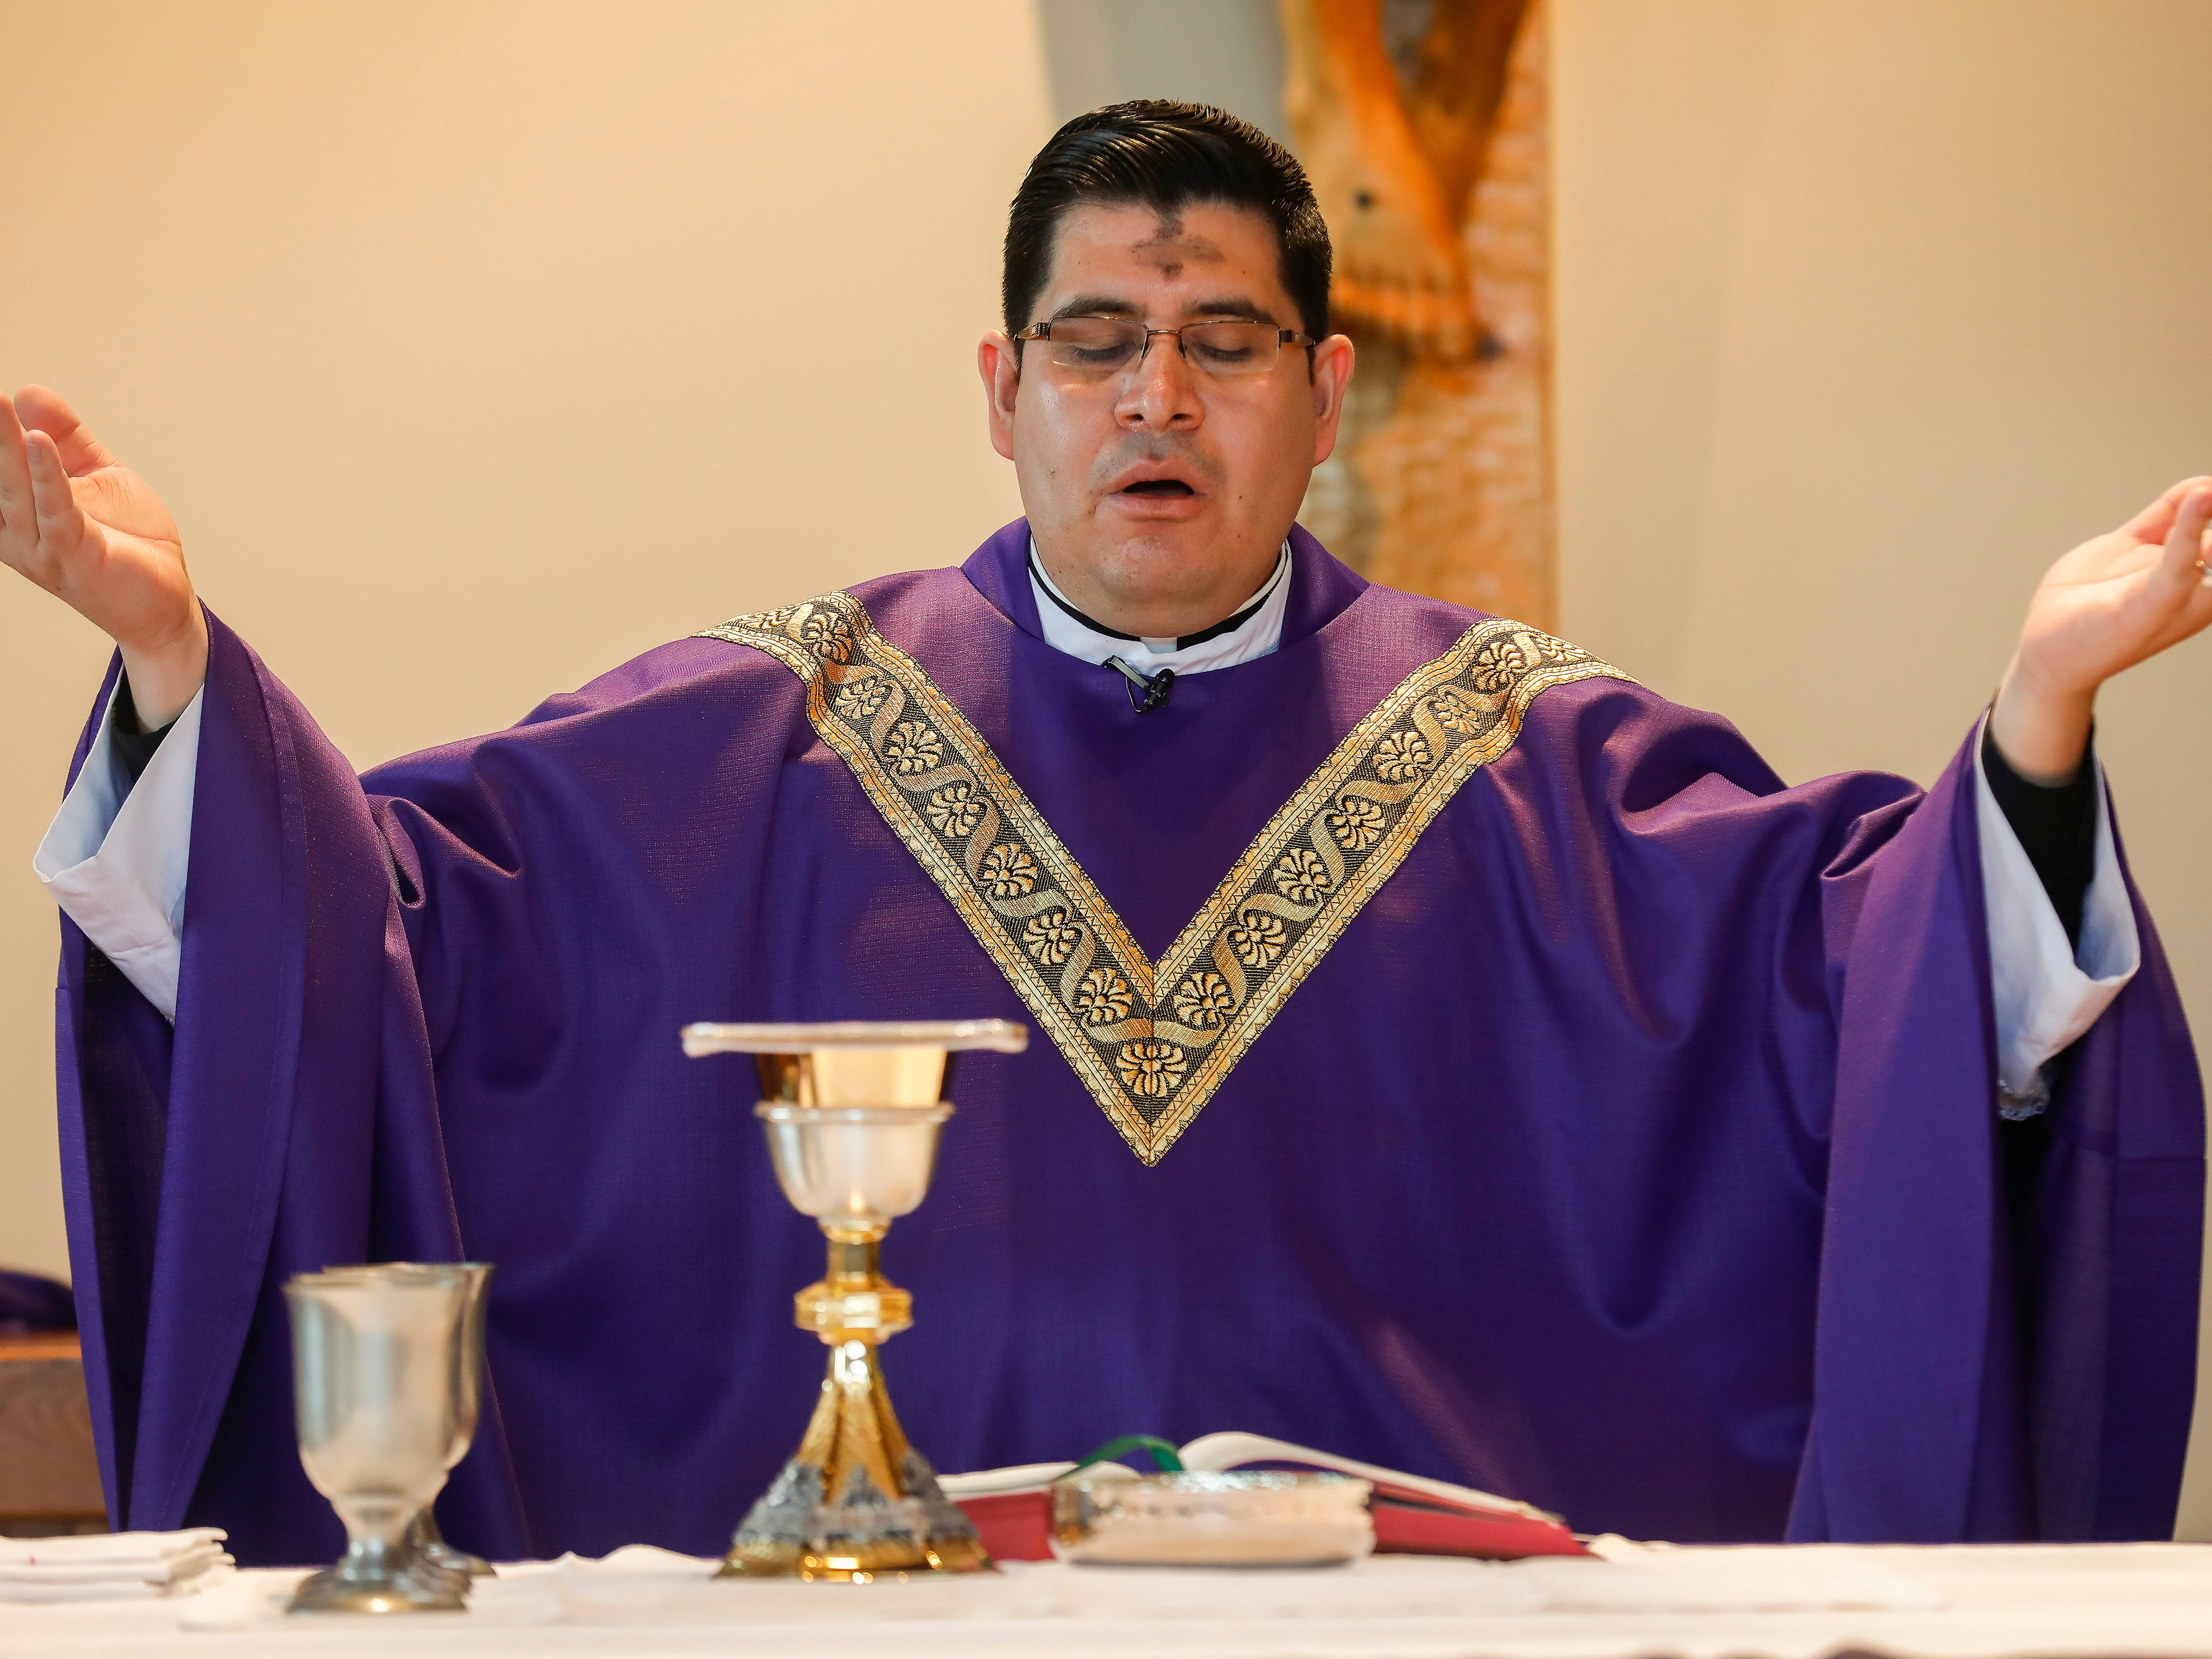 Father Javier Reyes says the Liturgy of the Eucharist during the Ash Wednesday Mass at the Missouri State University Catholic Campus Ministry on Wednesday, March 6, 2019.